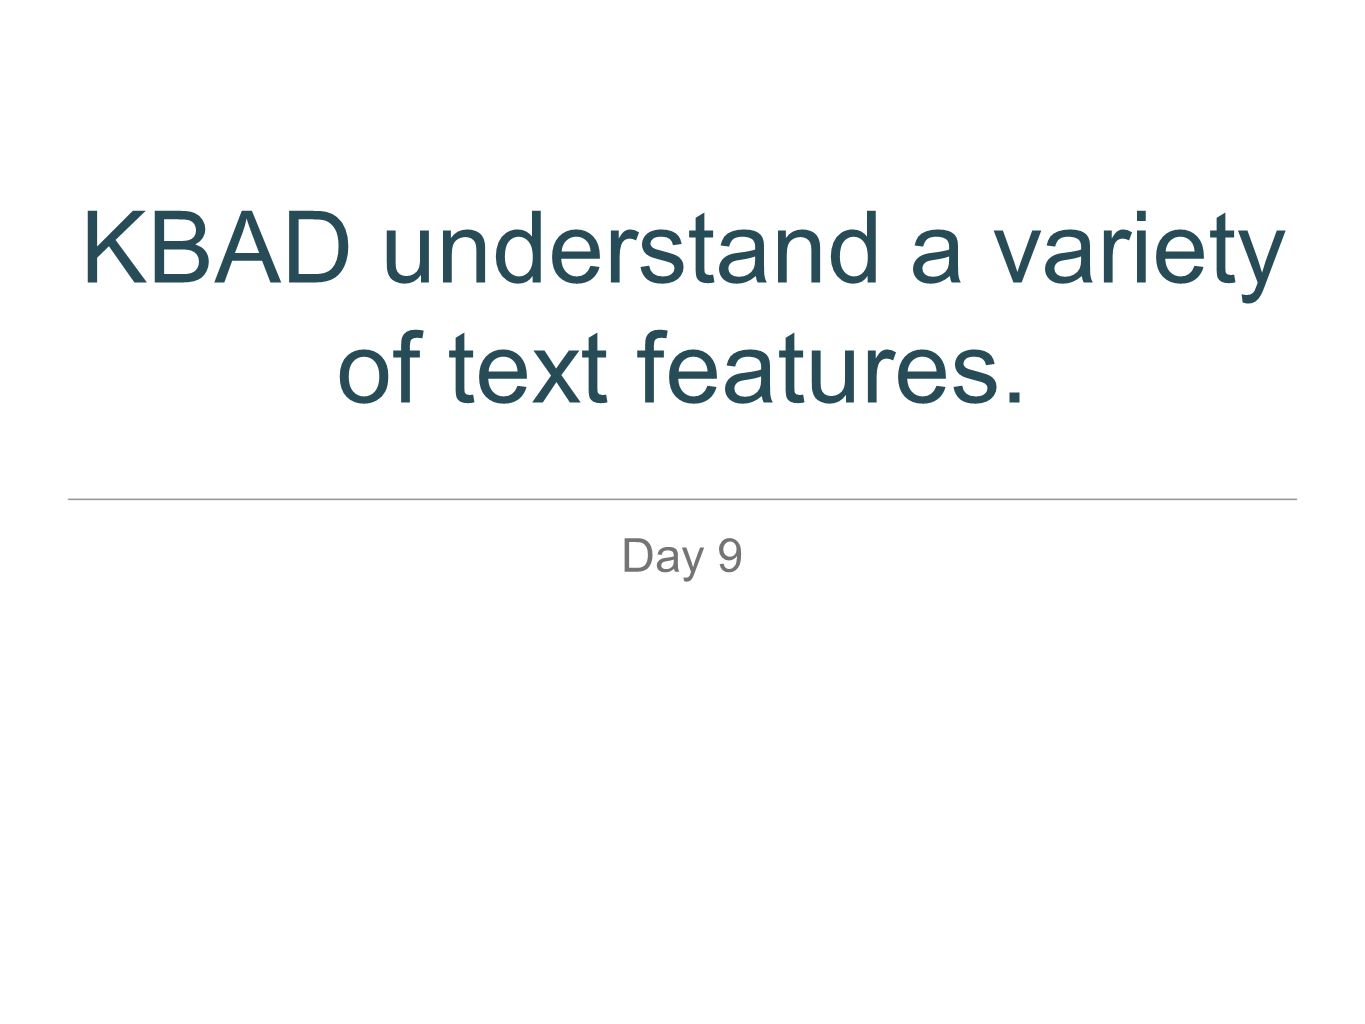 KBAD understand a variety of text features. Day 9